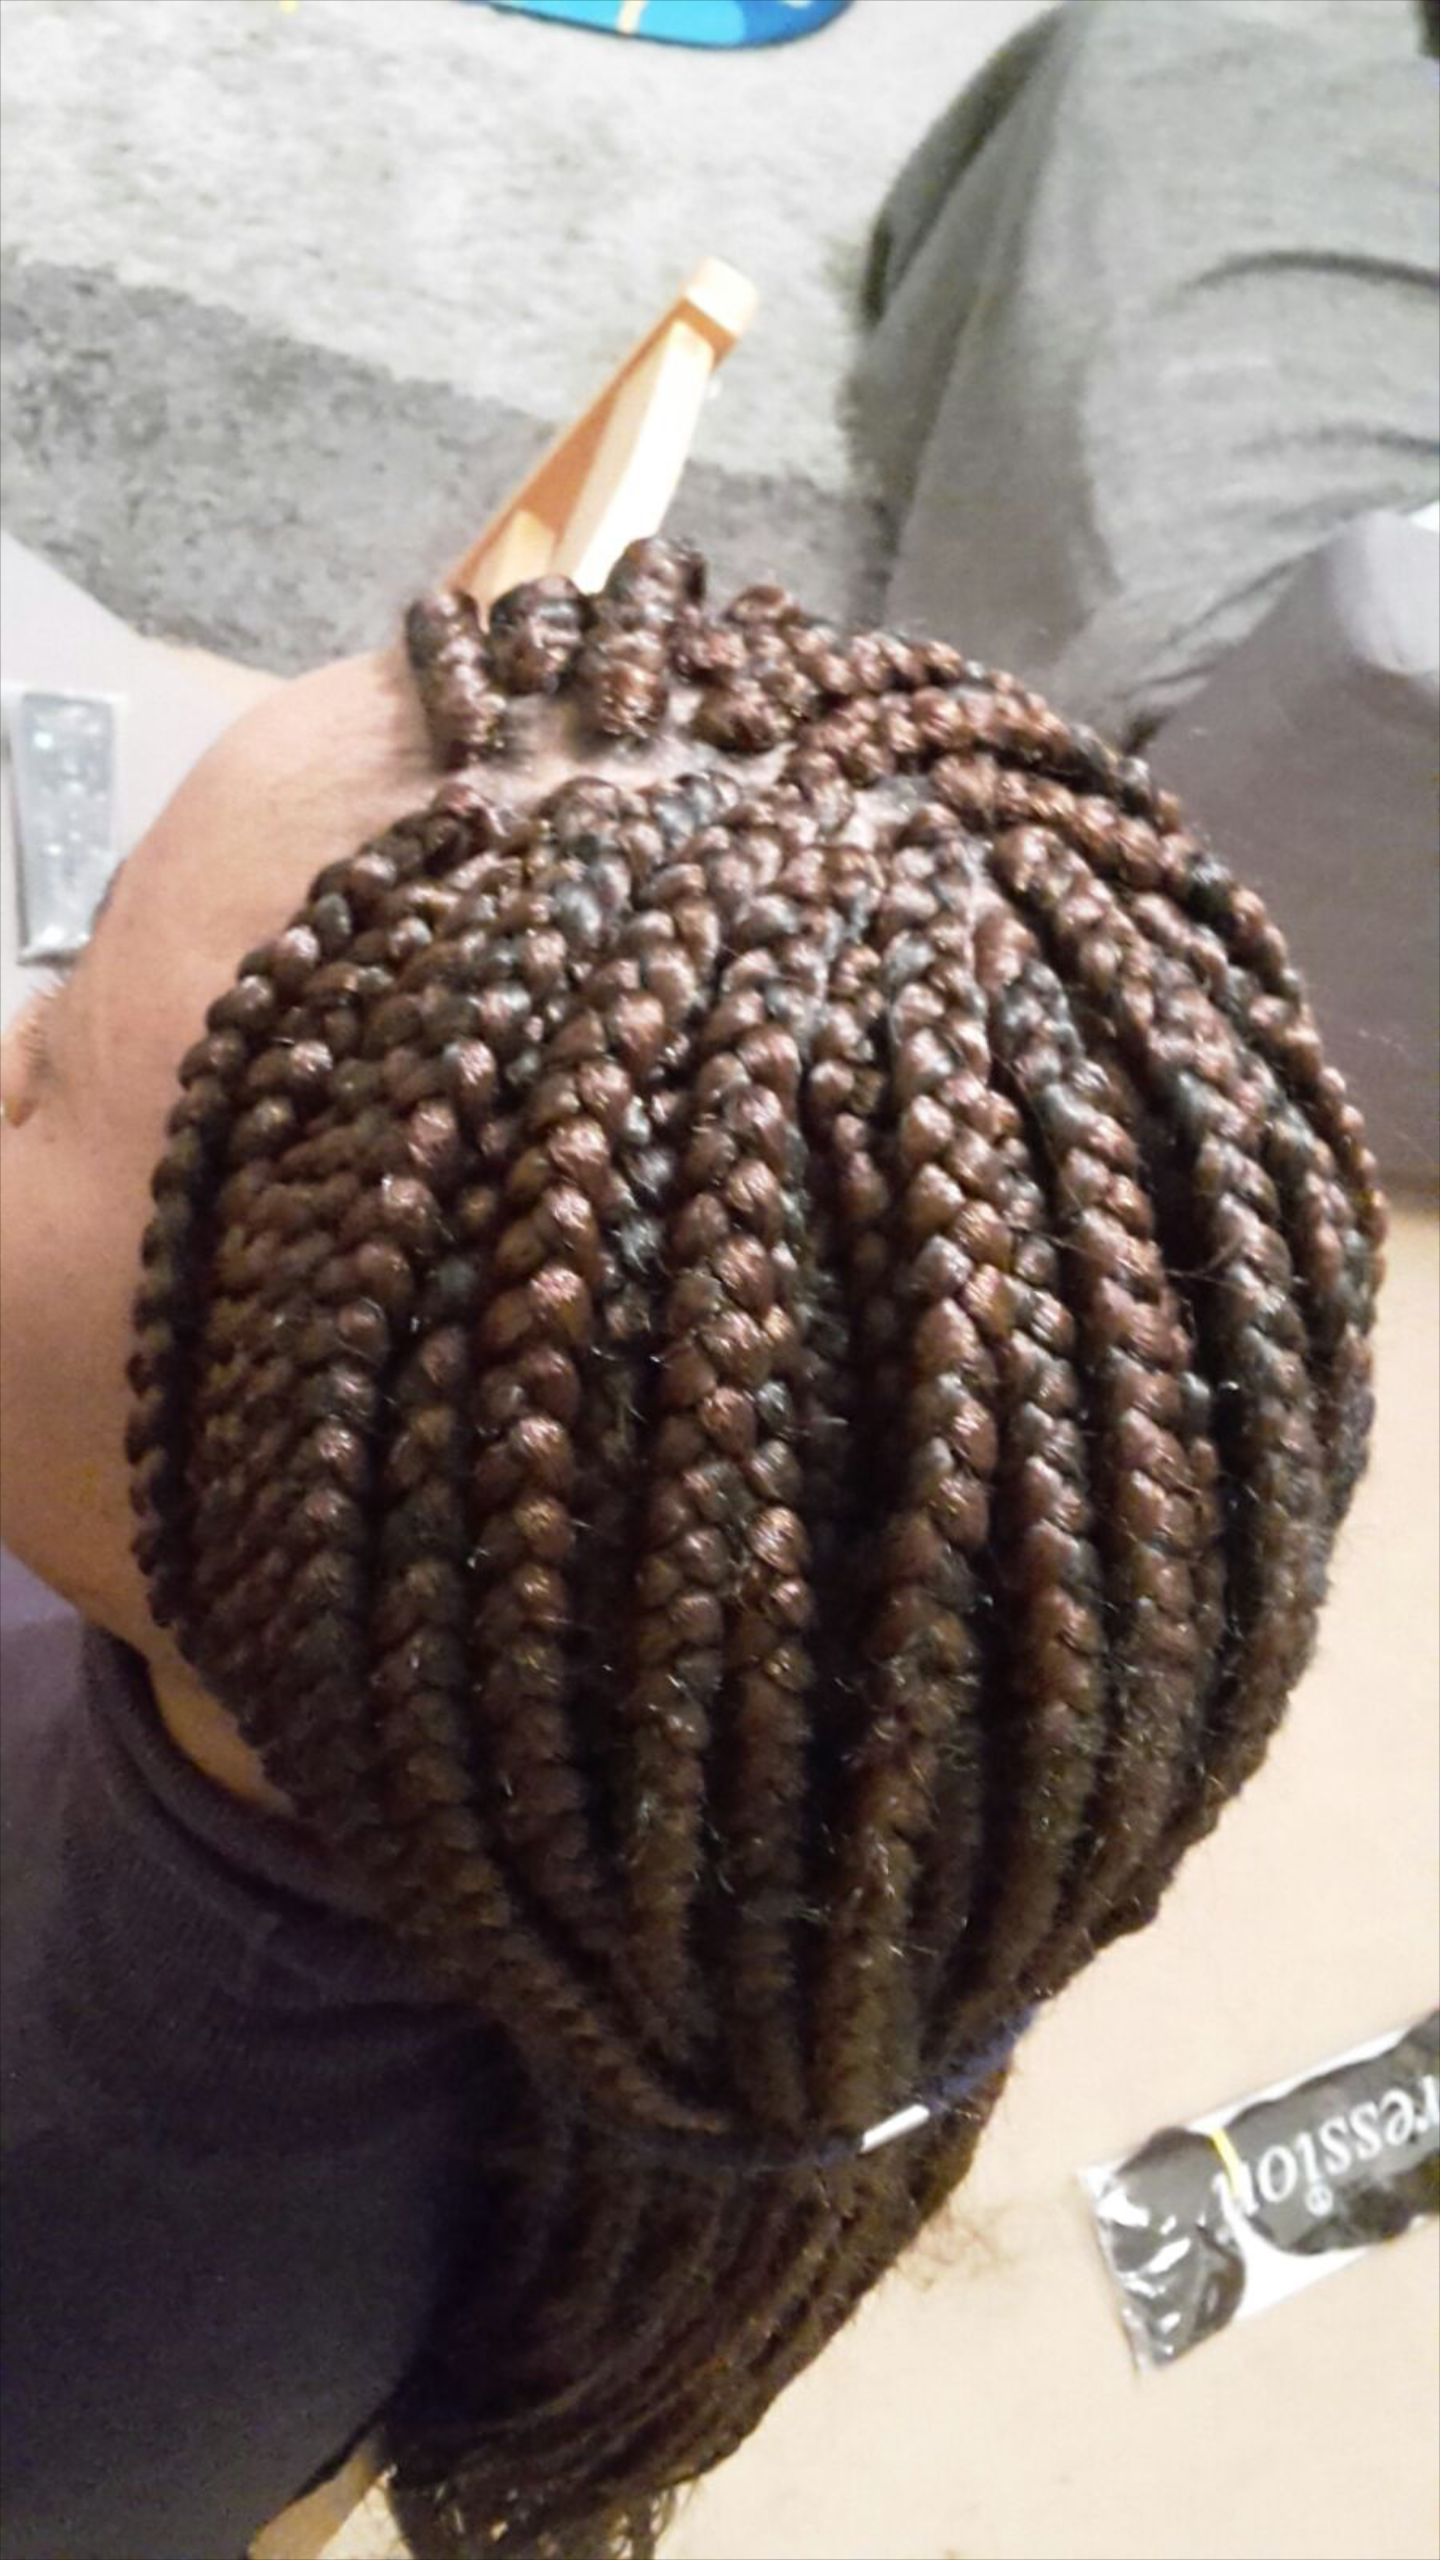 salon de coiffure afro tresse tresses box braids crochet braids vanilles tissages paris 75 77 78 91 92 93 94 95 PWBZZFZK